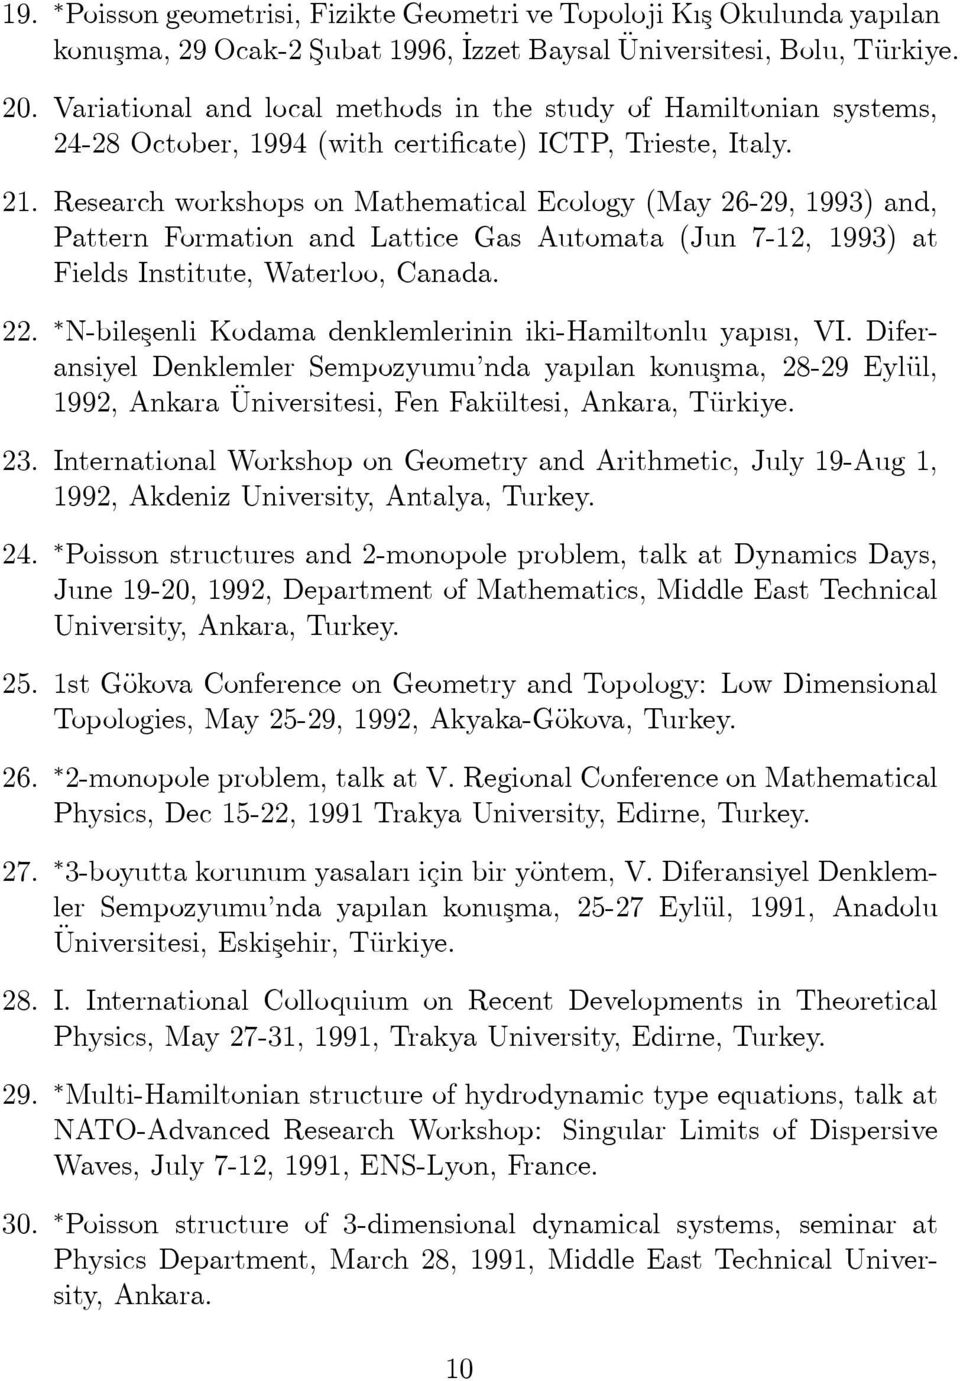 Research workshops on Mathematical Ecology (May 26-29, 1993) and, Pattern Formation and Lattice Gas Automata (Jun 7-12, 1993) at Fields Institute, Waterloo, Canada. 22.